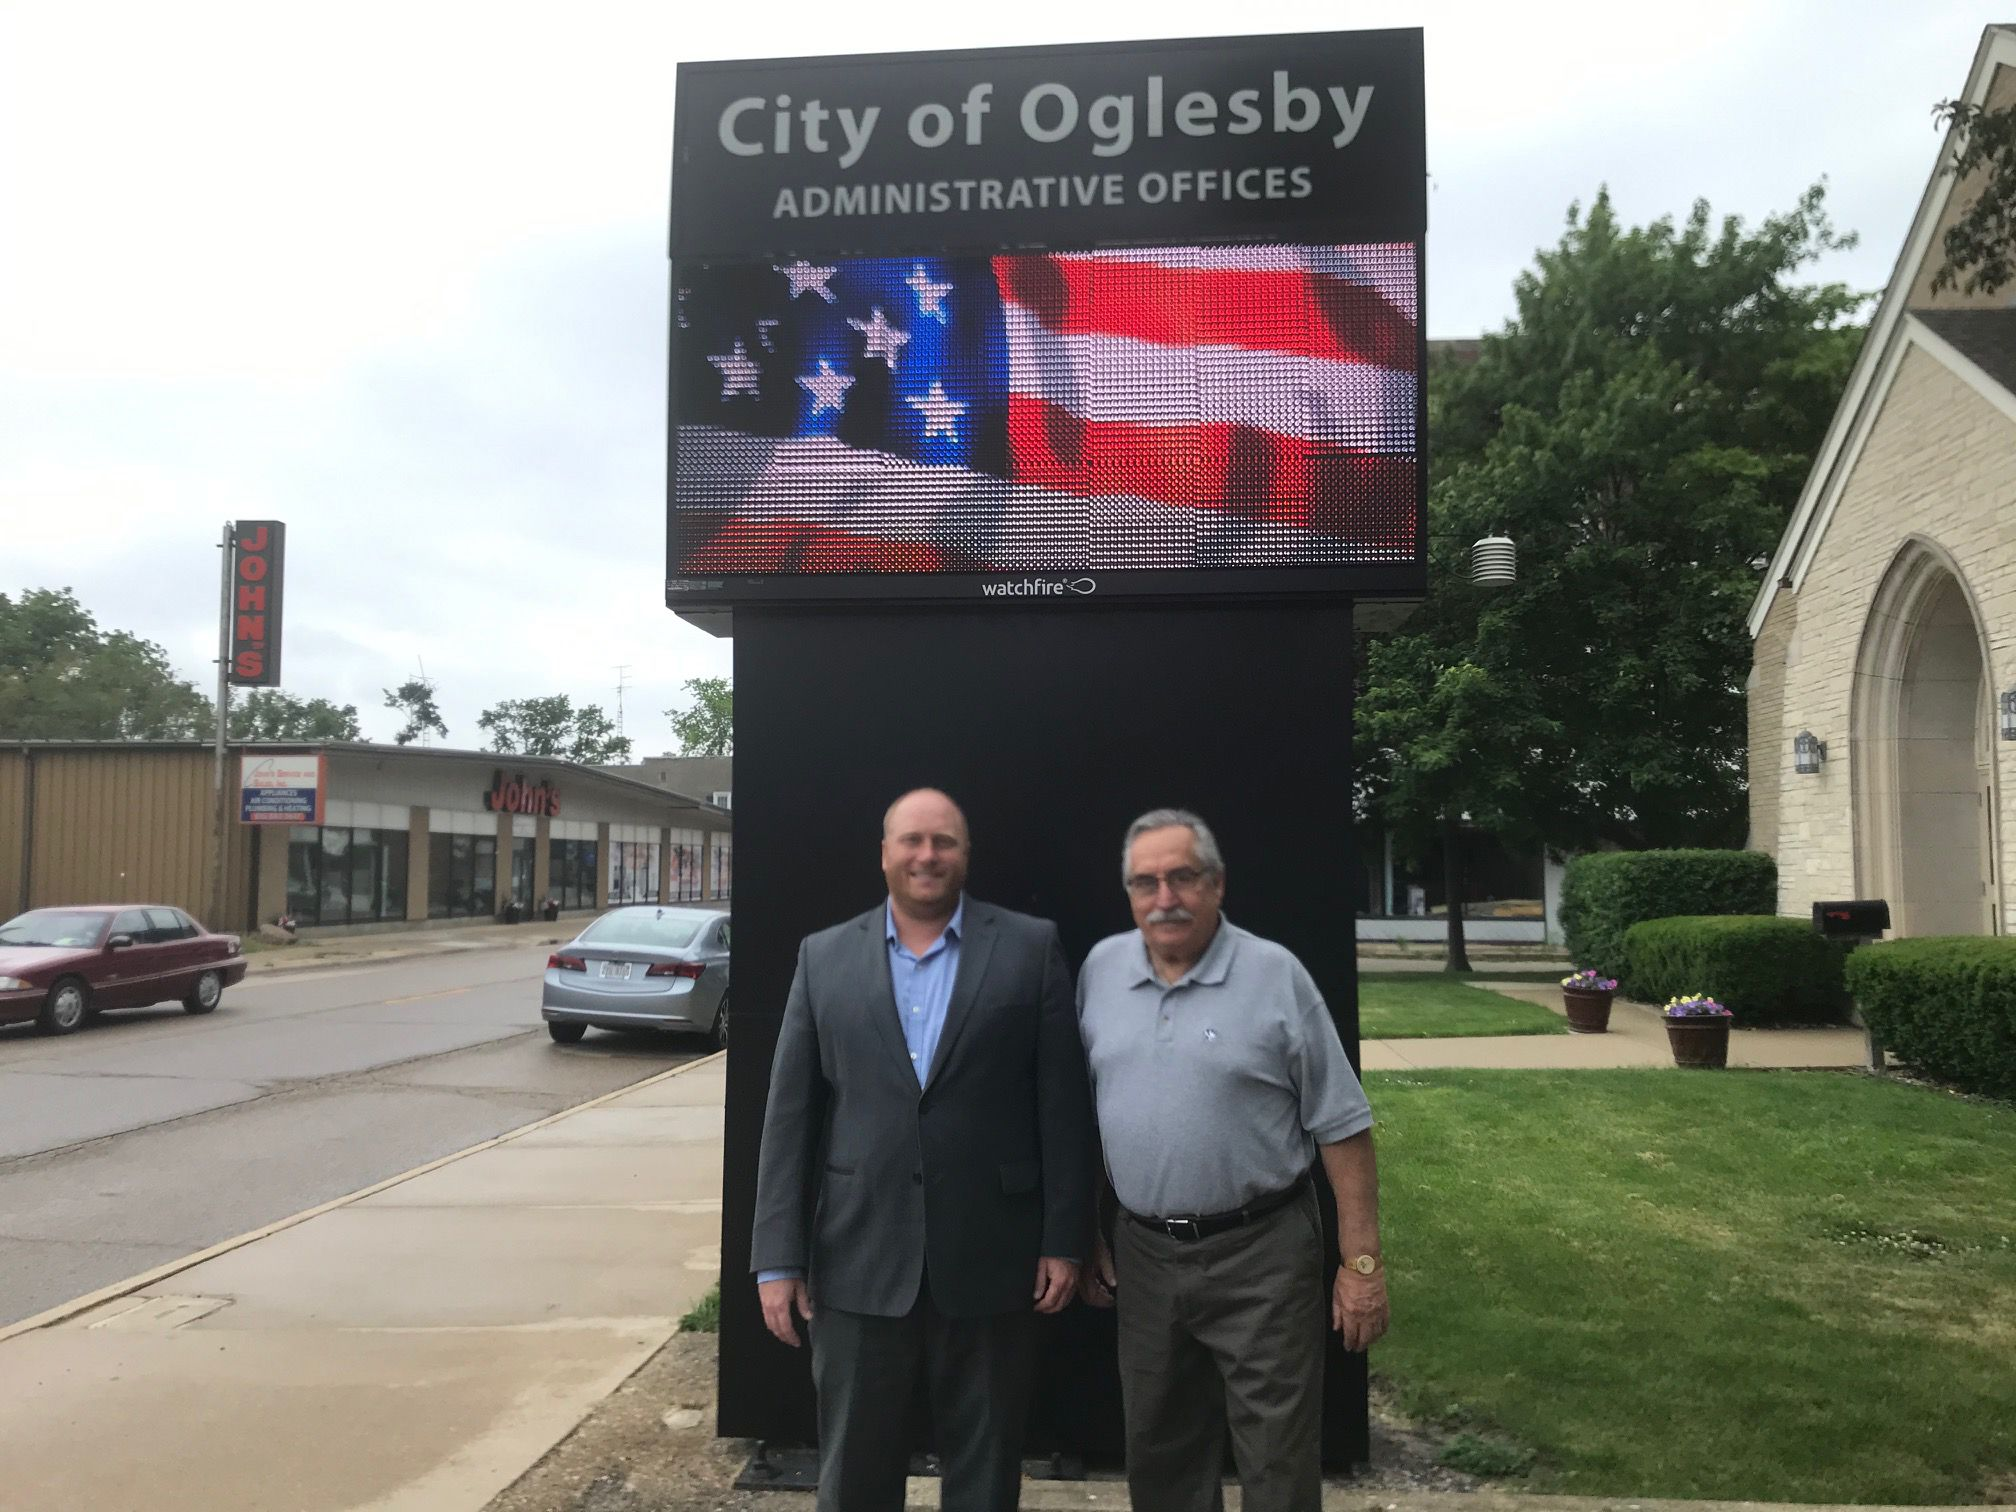 They have good reason to be smiling. Oglesby Commissioner Tom Argubright (left) and Mayor Dom Rivara opened their tax bills and found the city's property values increased, rates slid and the bottom line tumbled.